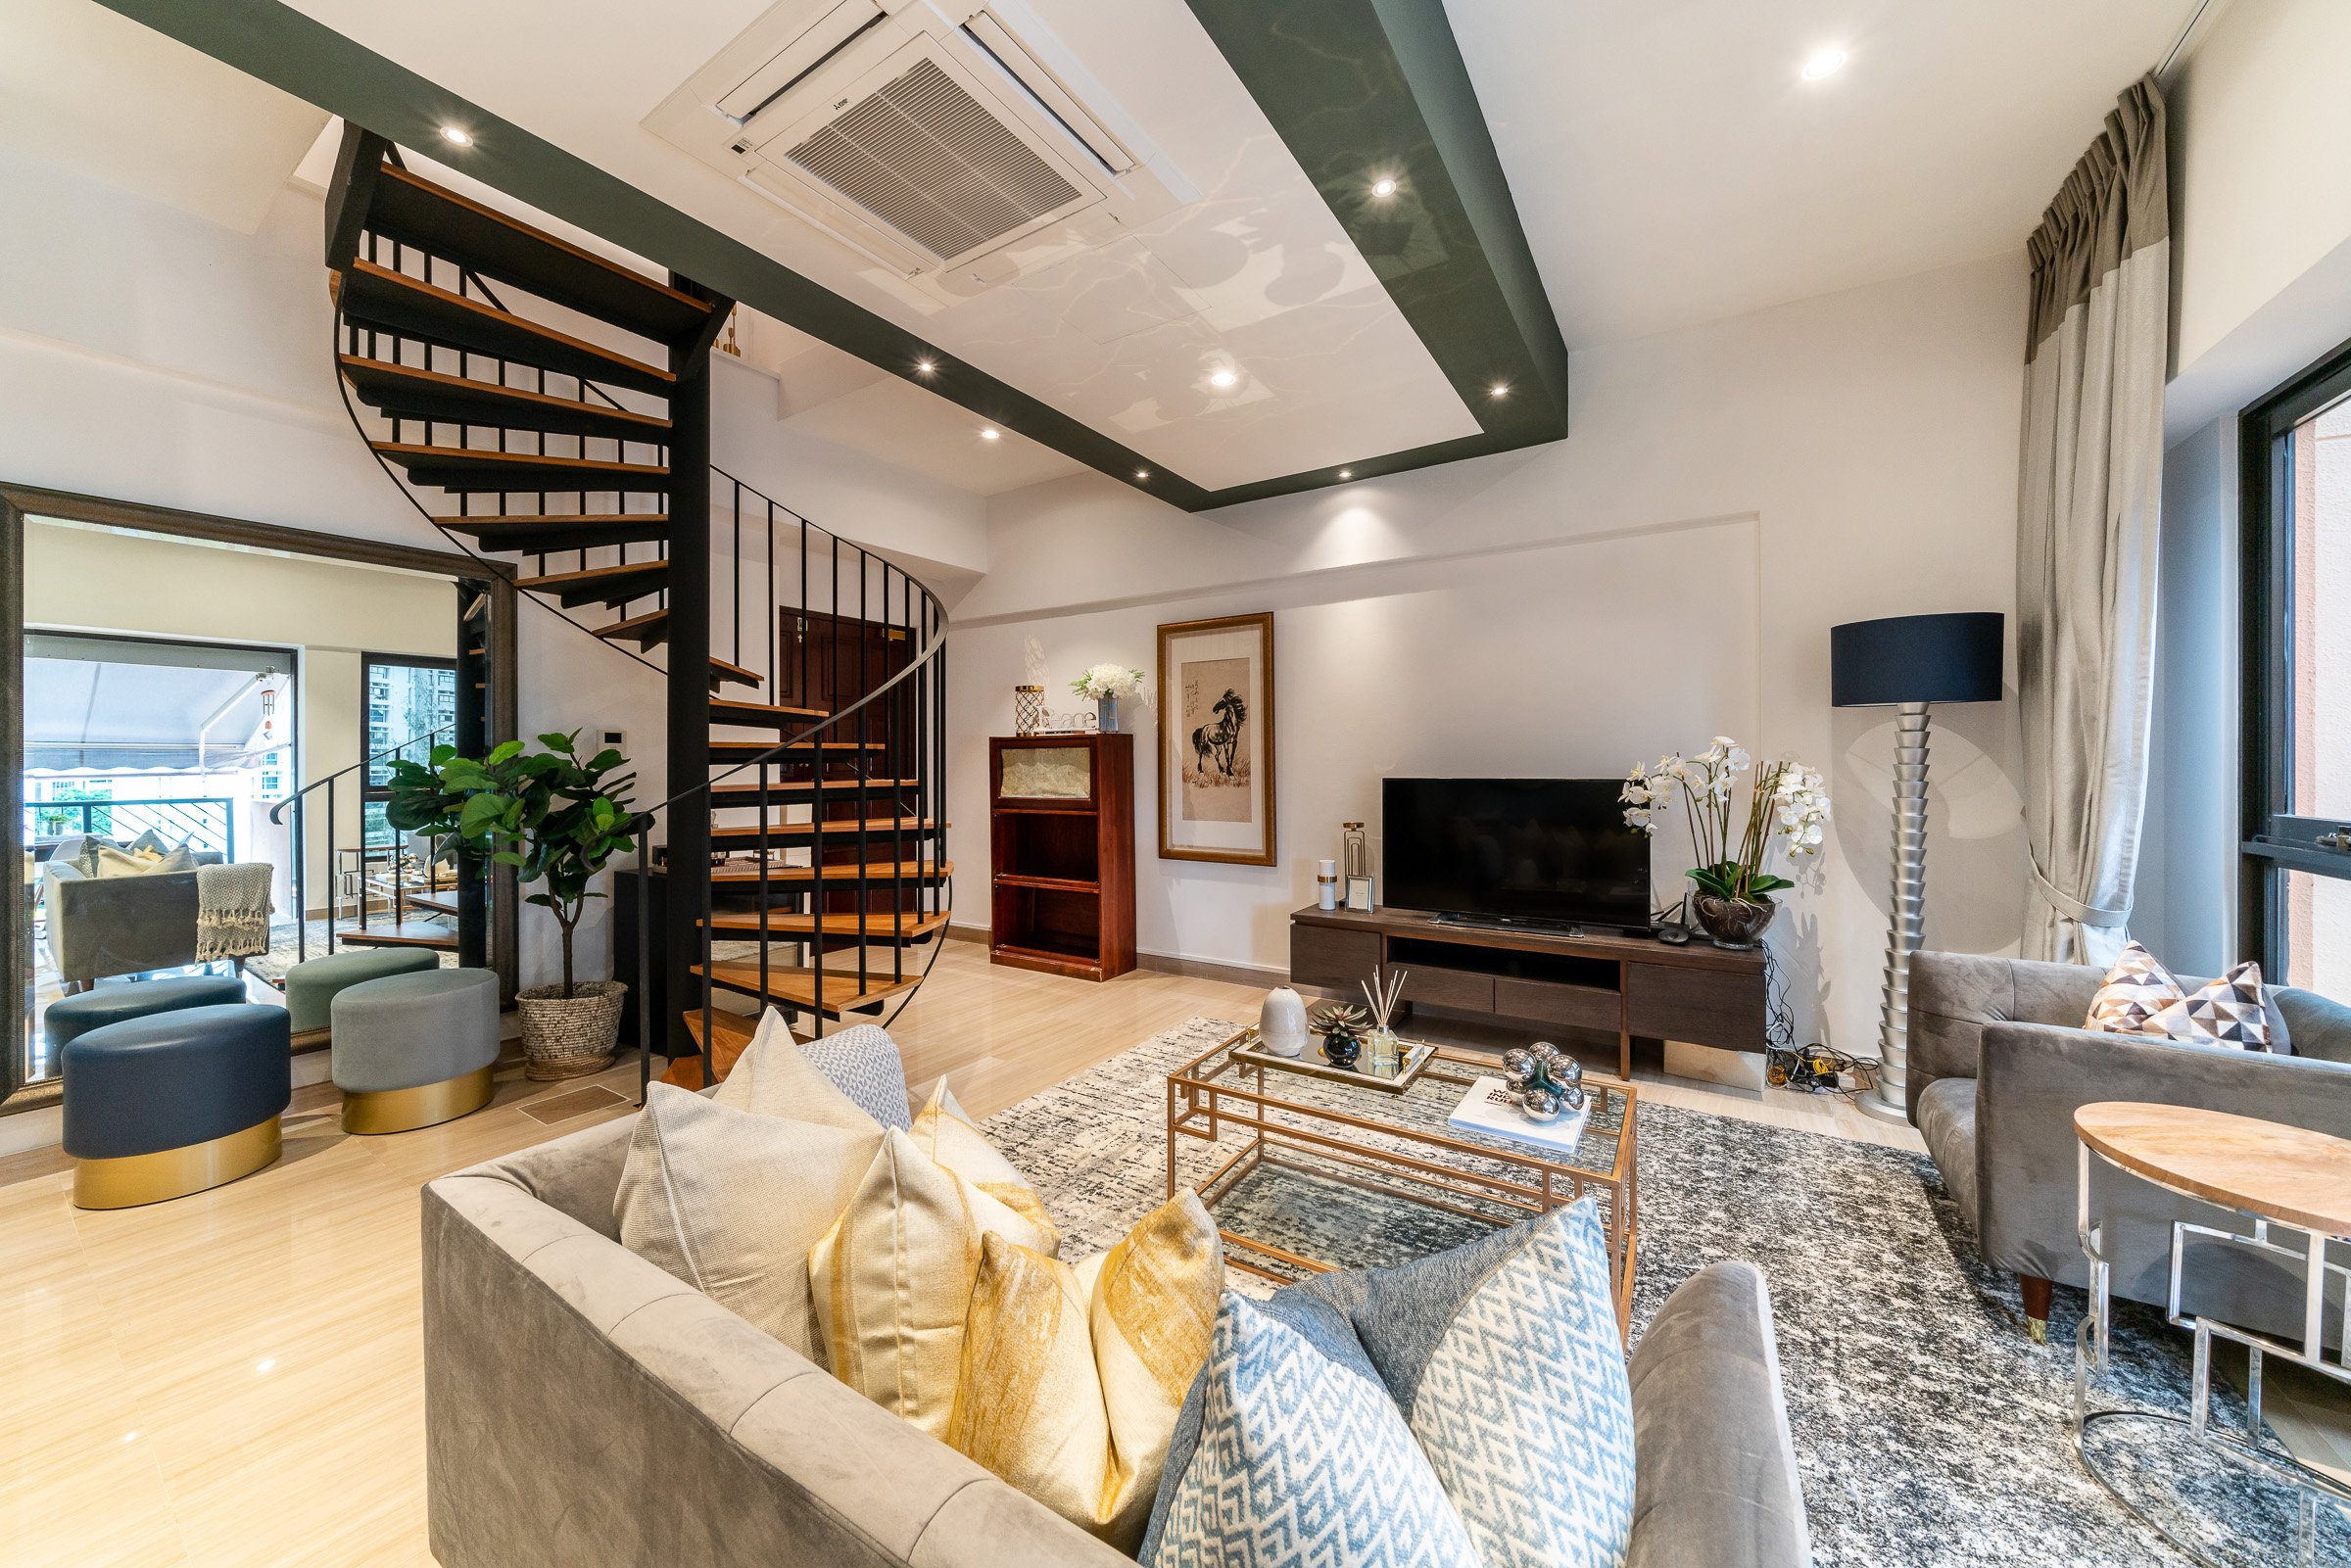 areteculture, interior design singapore renovation